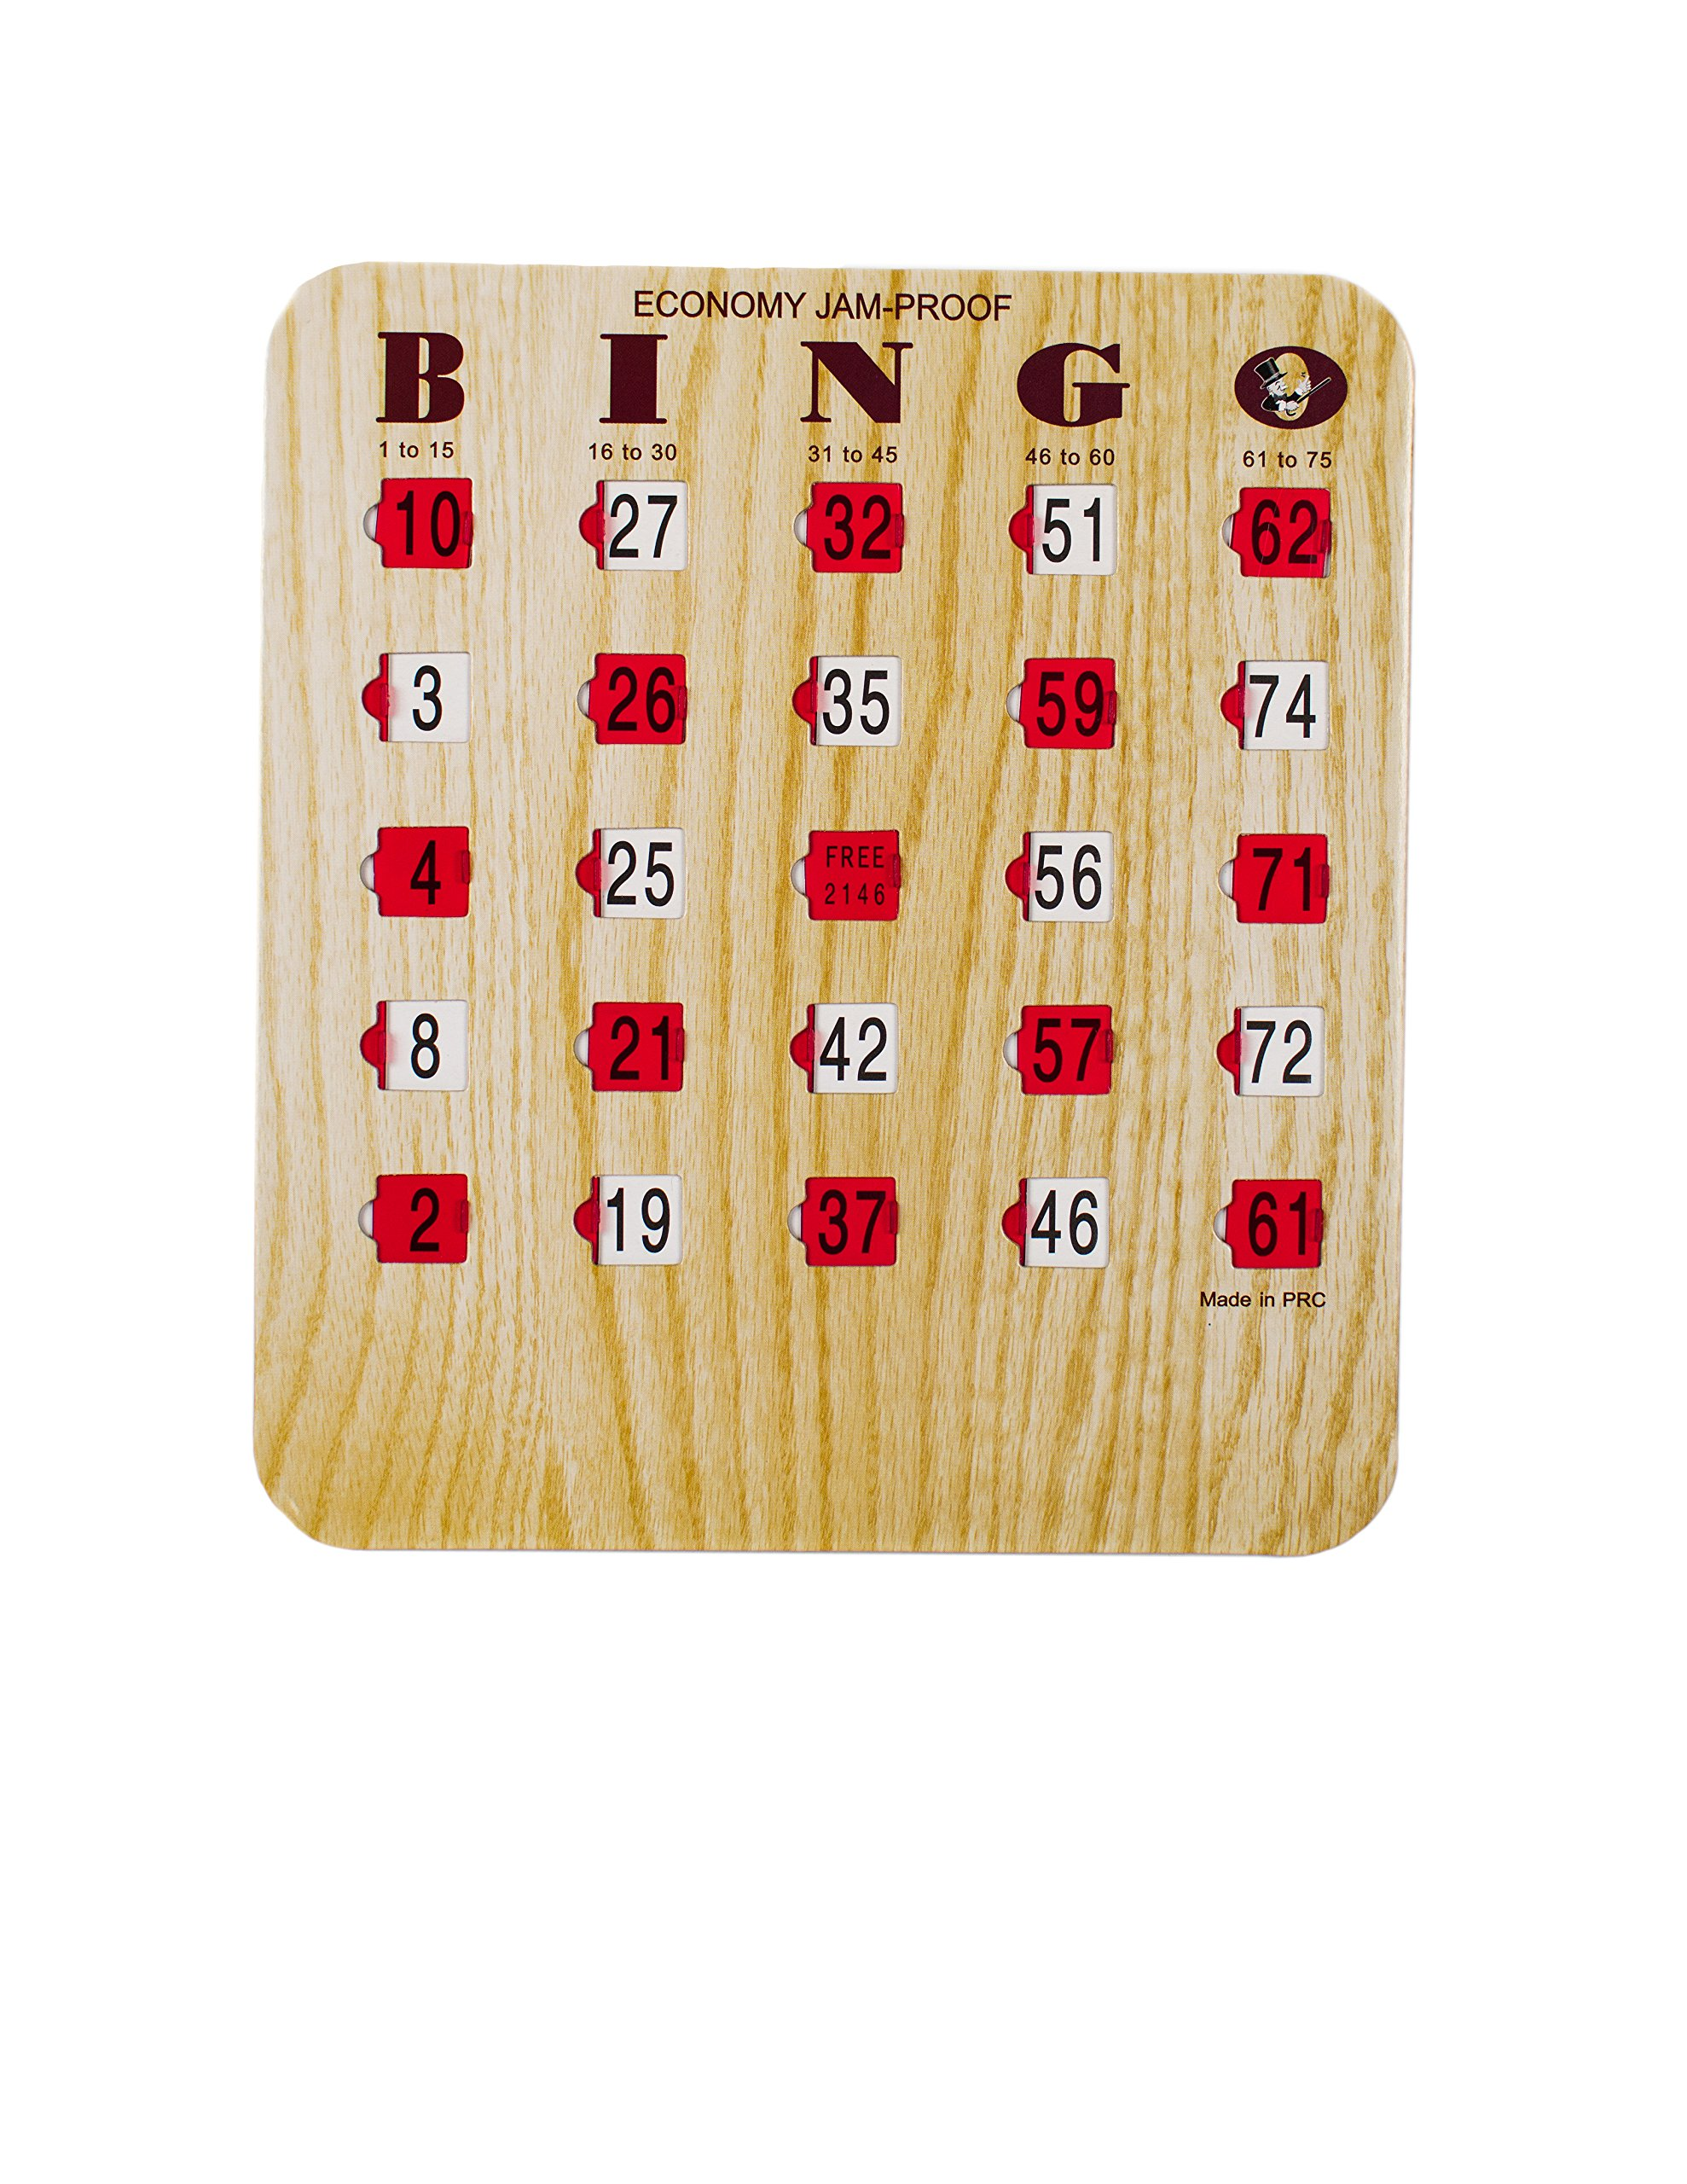 Economy Jam Proof Bingo Shutter Card, 200 Count by Mr. Chips, Inc